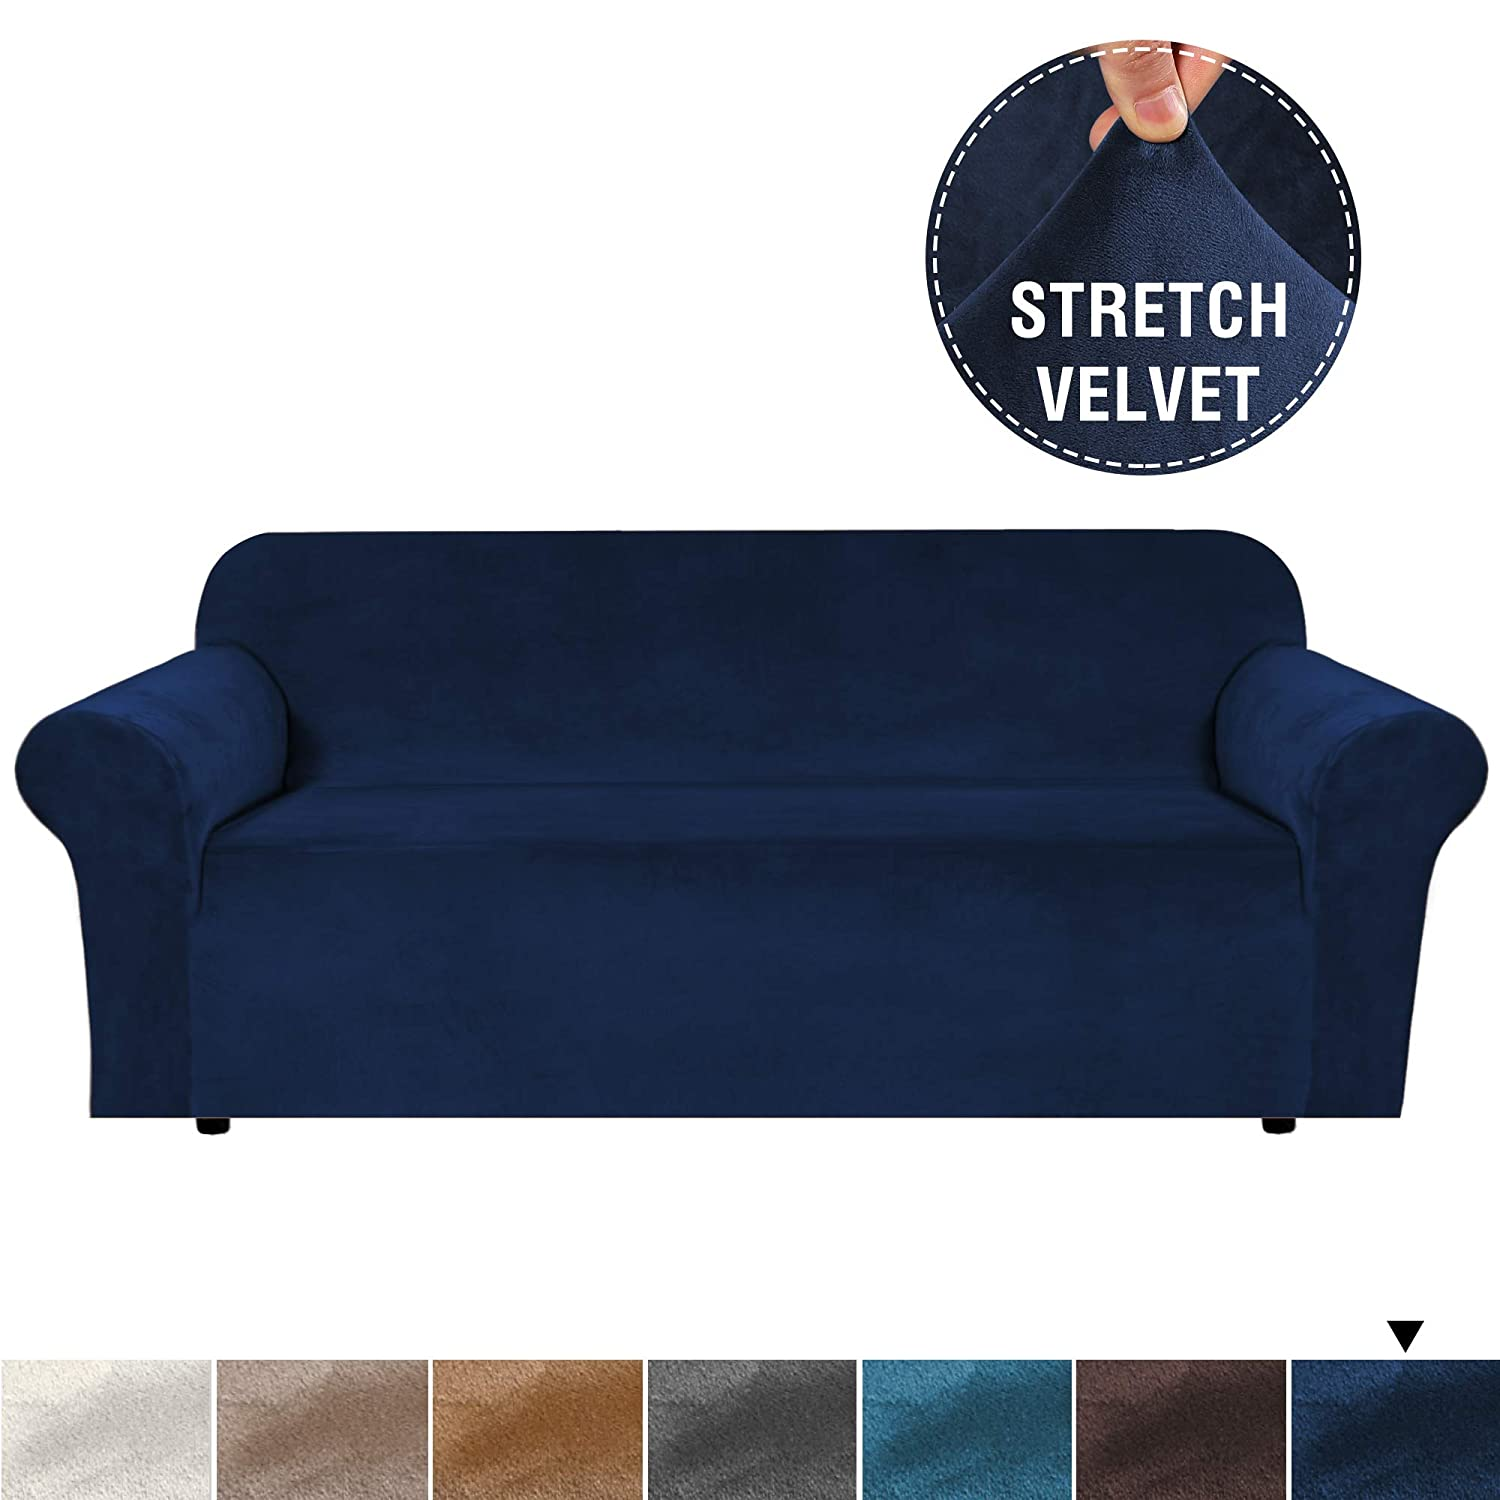 H.VERSAILTEX Real Soft Rich Velvet Plush Sofa Cover Slipcover, Thick Velvet Stretch Couch Cover for 3 Seat Sofa High Stretch Sofa Slipcover Stylish Furniture Cover Machine Washable - Sofa - Navy